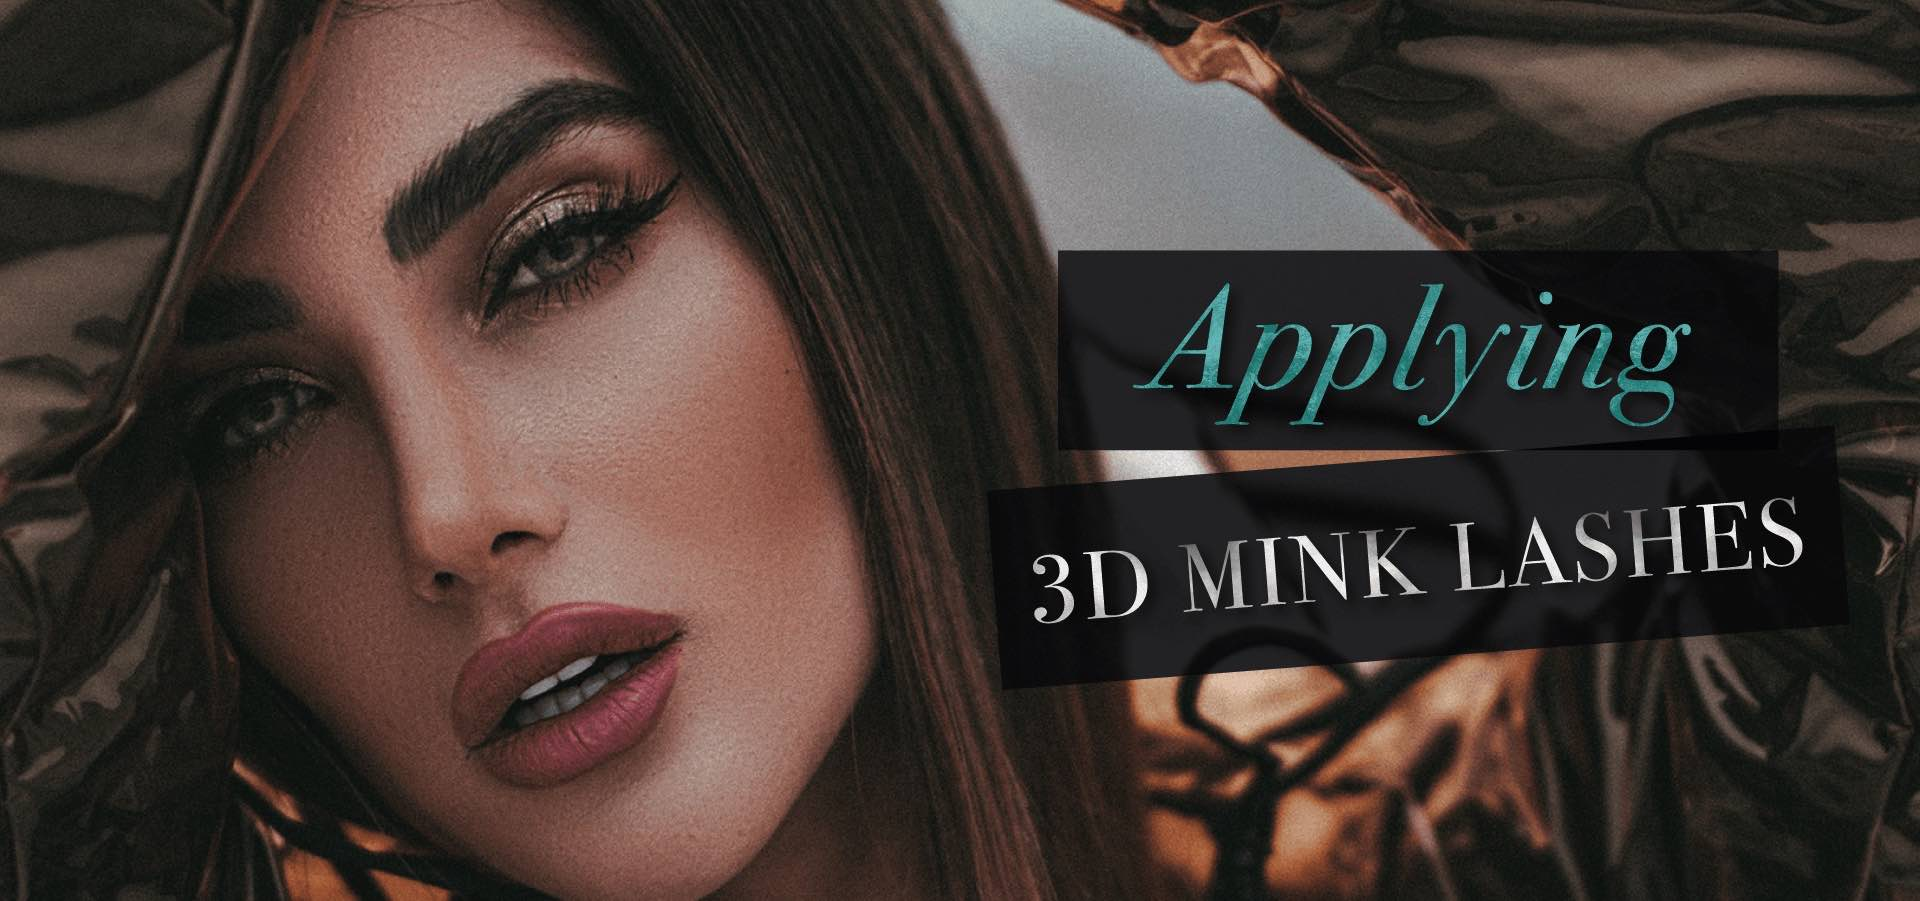 How to apply 3d mink lashes